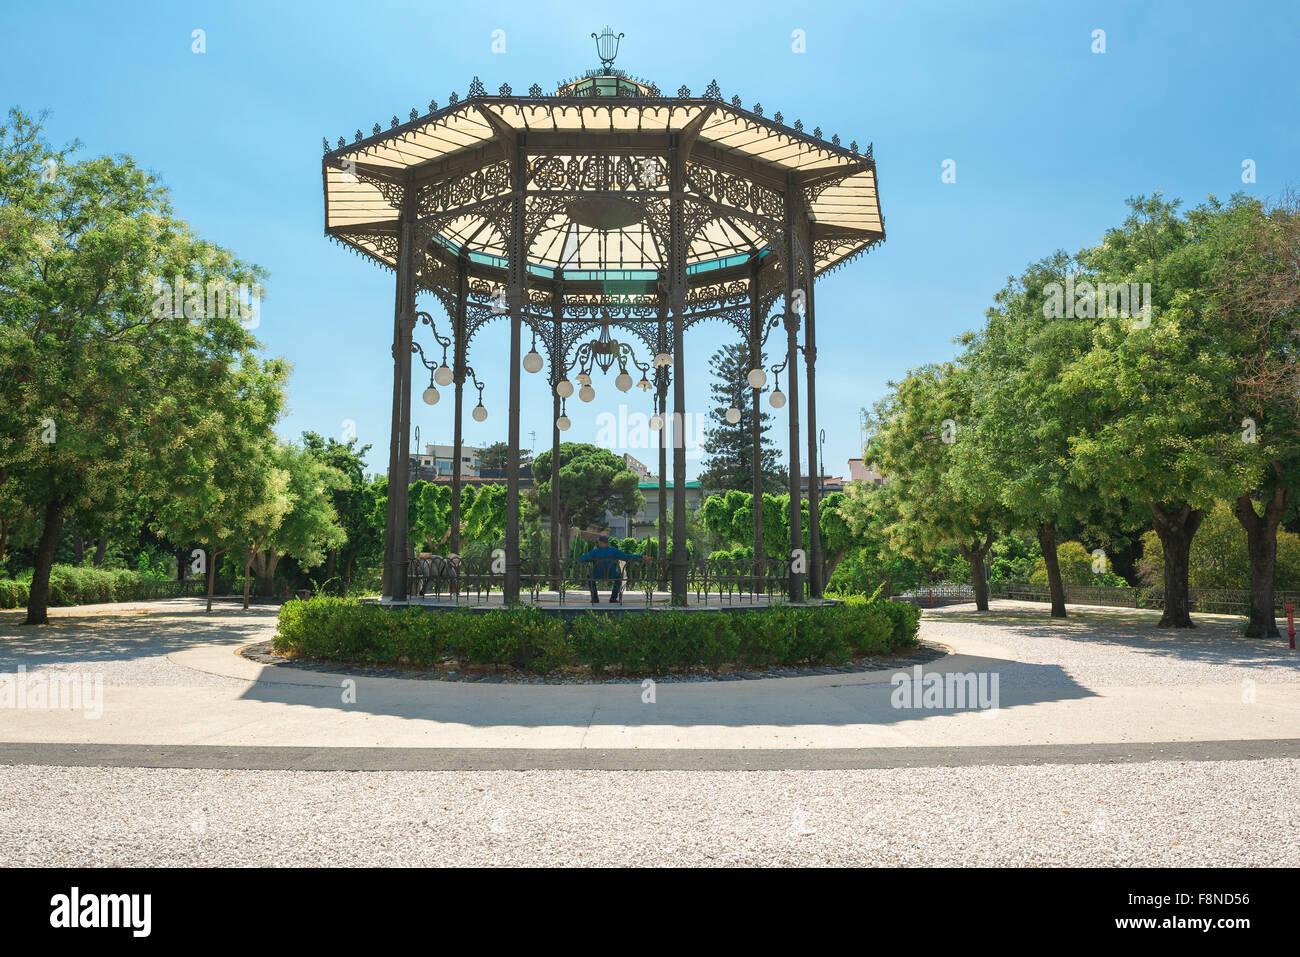 Band stand summer, view of the bandstand in the Villa Bellini, the largest park and garden in Catania, Sicily. - Stock Image